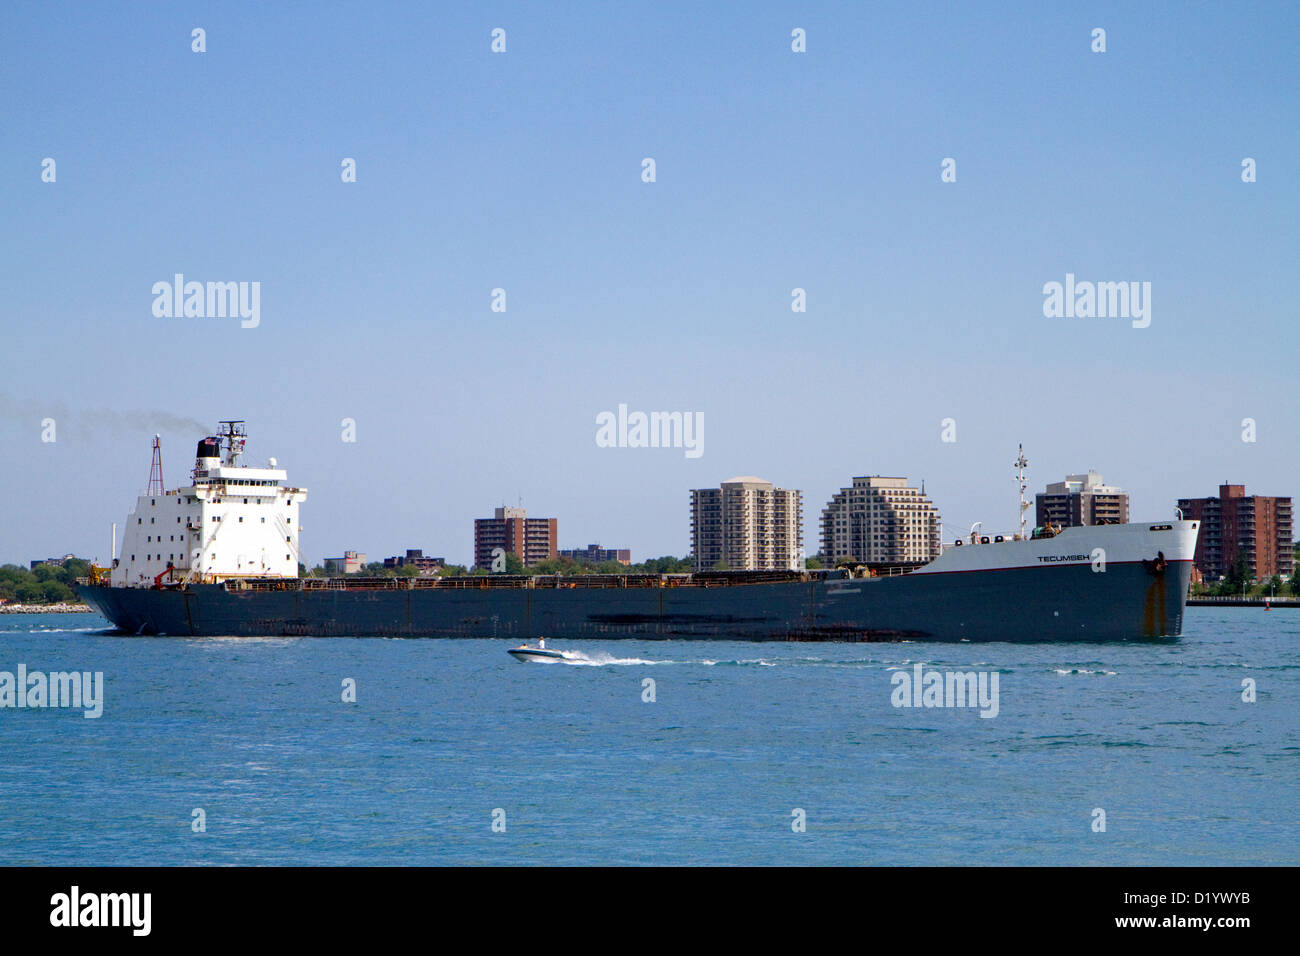 Tecumseh bulk carrier ship on the St. Clair River at Port Huron, Michigan, USA. - Stock Image